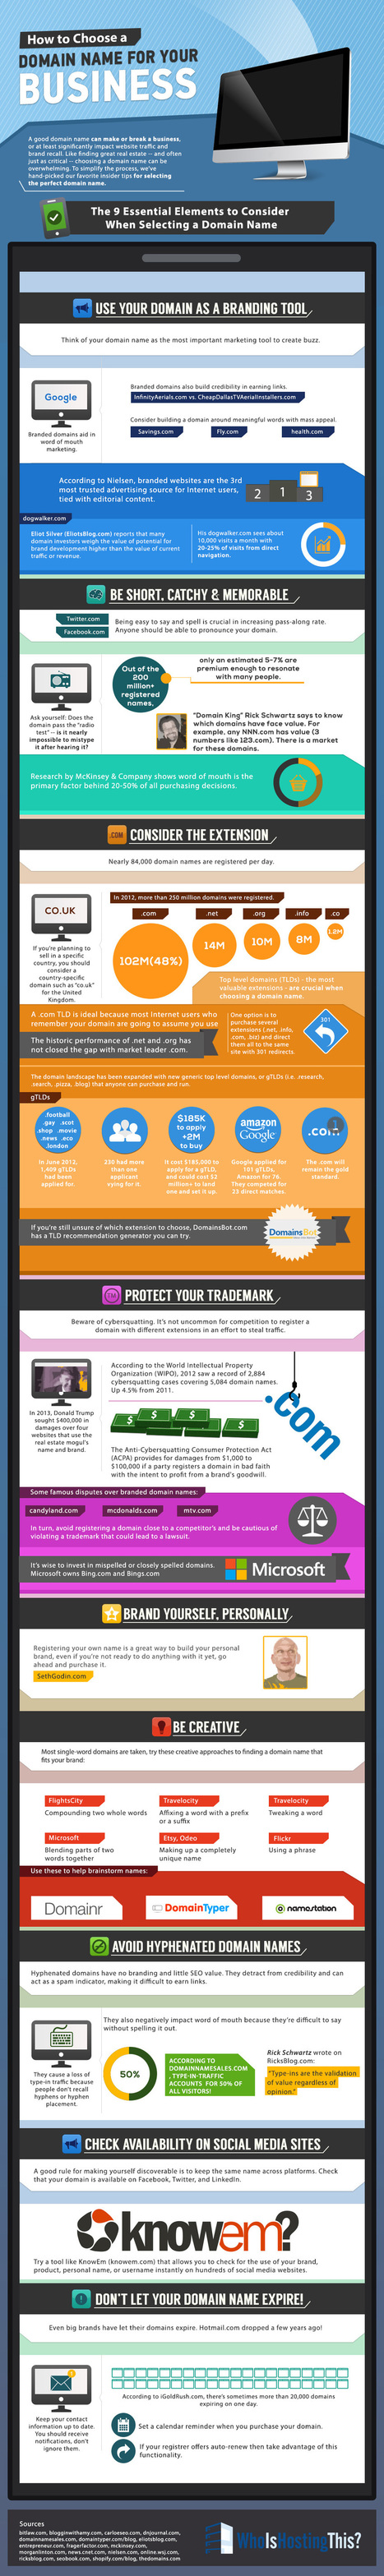 How to Choose a Domain Name [Infographic] | ToxNetLab's Blog | Scoop.it